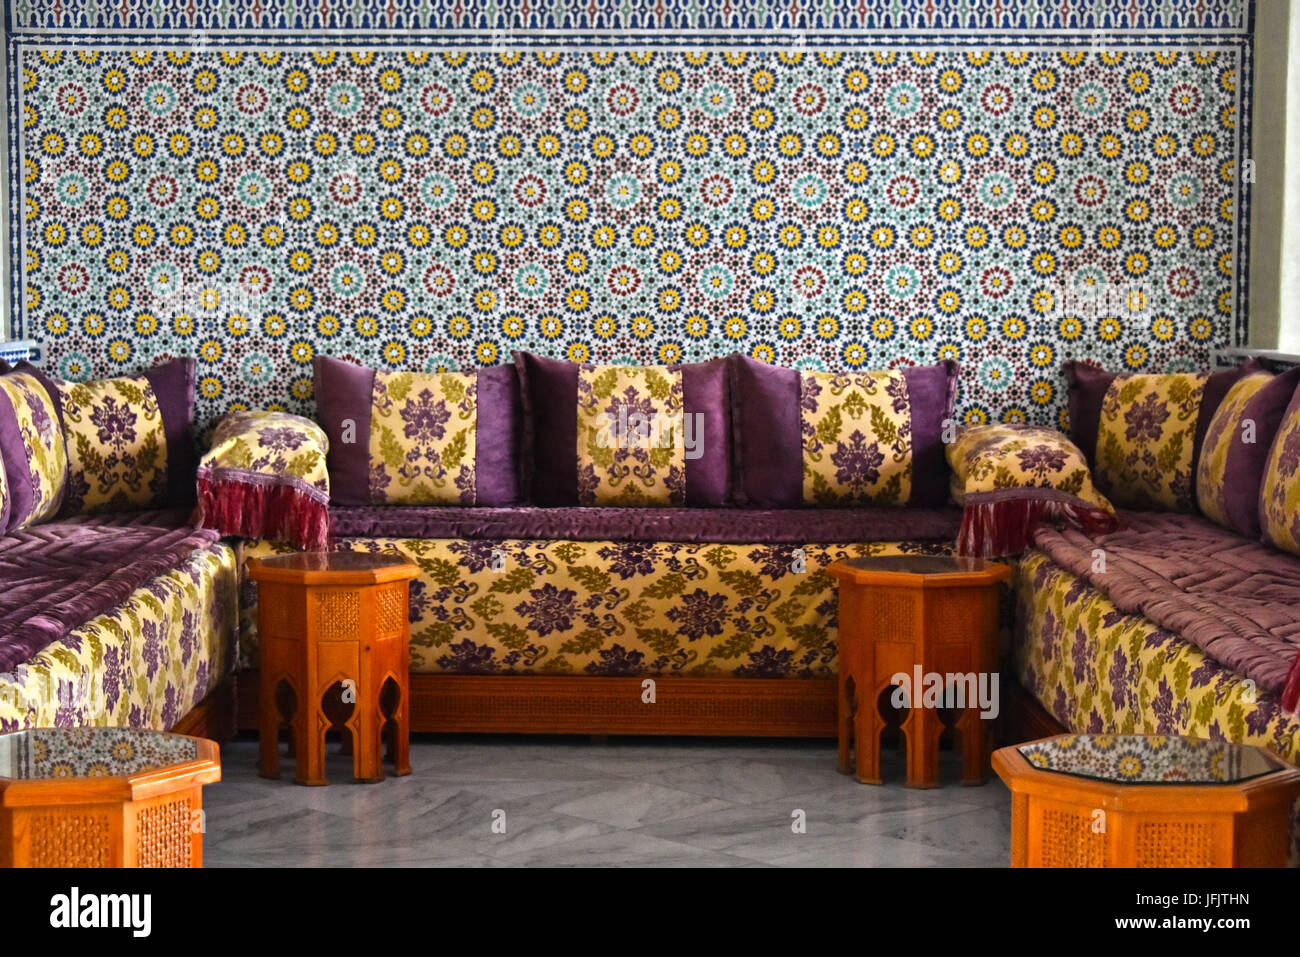 Traditional Moroccan Interior Design Stock Photo: 147317233 ...